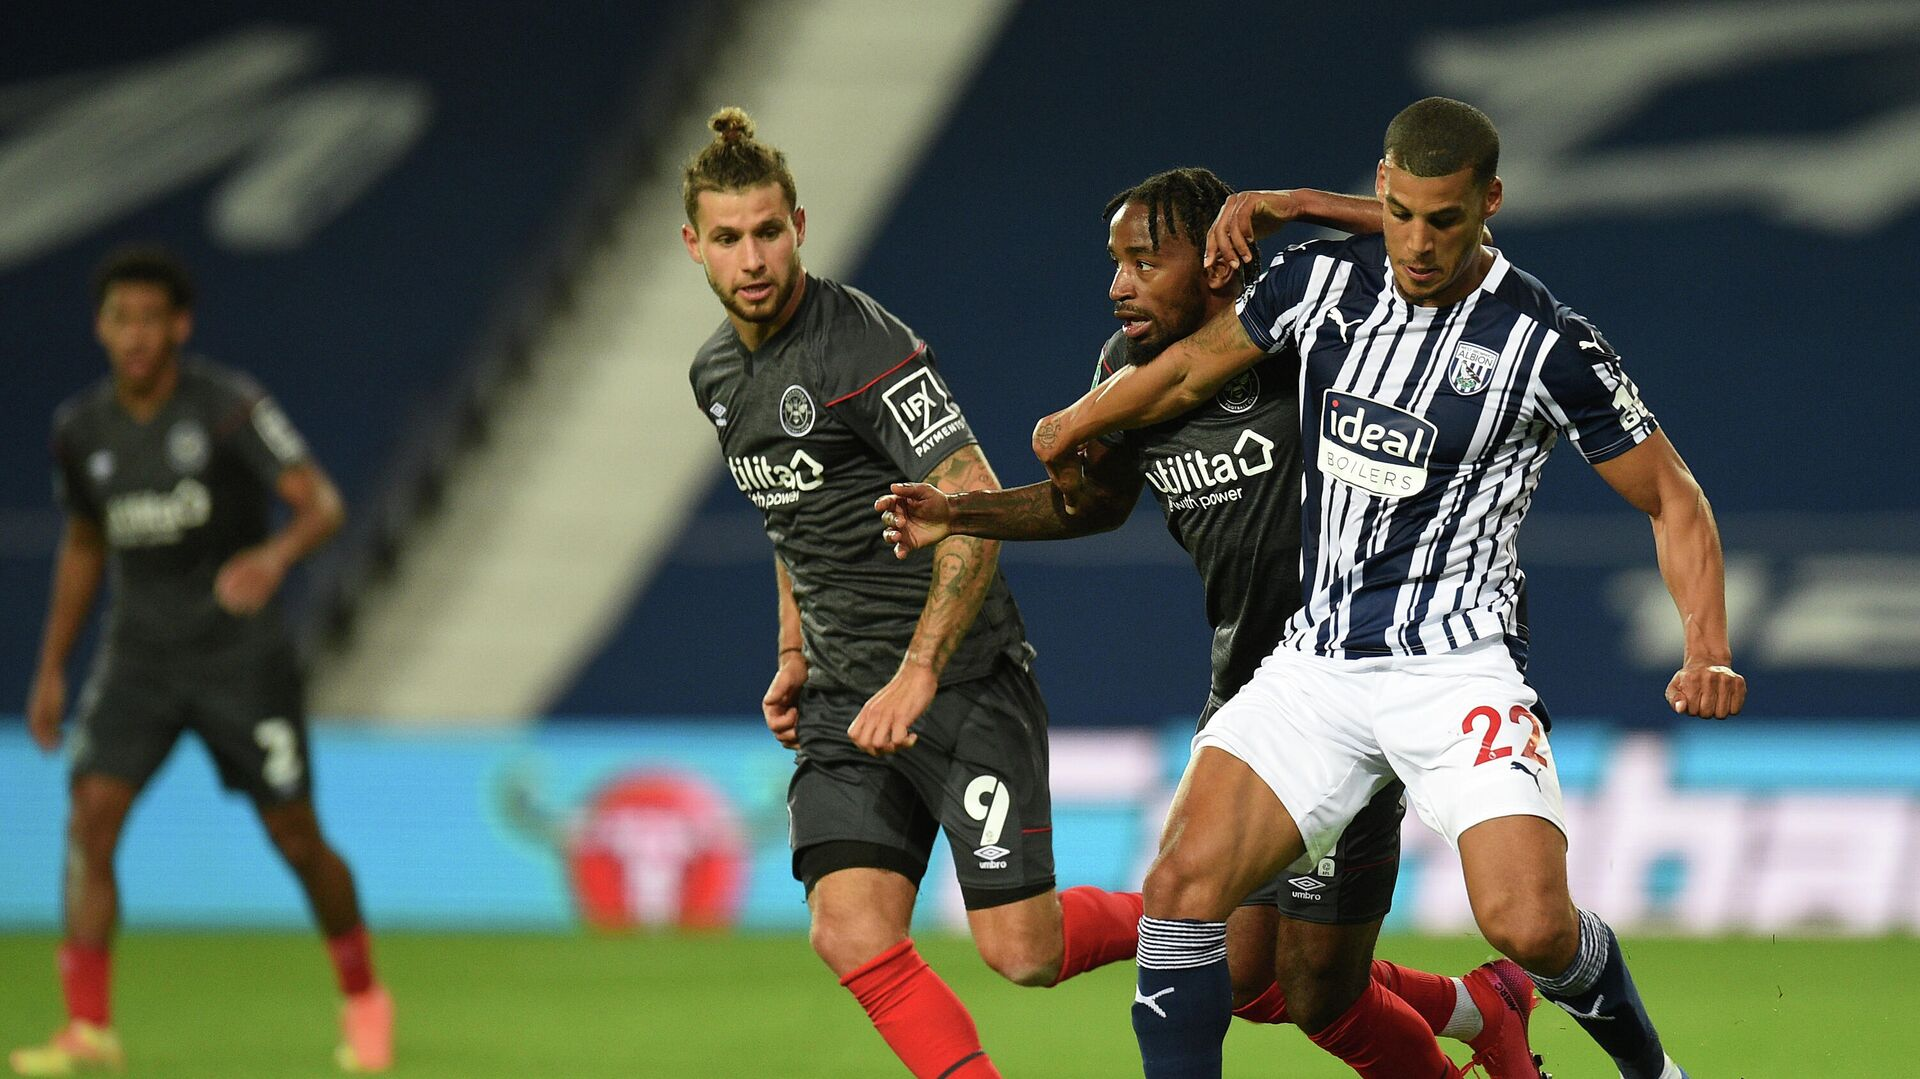 West Bromwich Albion's English defender Lee Peltier (R) holds off a challenge from Brentford's midfielder Tarique Fosu (2nd R) during the English League Cup third round football match between West Bromwich Albion and Brentford at The Hawthorns stadium in West Bromwich, central England, on September 22, 2020. (Photo by Oli SCARFF / POOL / AFP) / RESTRICTED TO EDITORIAL USE. No use with unauthorized audio, video, data, fixture lists, club/league logos or 'live' services. Online in-match use limited to 120 images. An additional 40 images may be used in extra time. No video emulation. Social media in-match use limited to 120 images. An additional 40 images may be used in extra time. No use in betting publications, games or single club/league/player publications. /  - РИА Новости, 1920, 22.09.2020